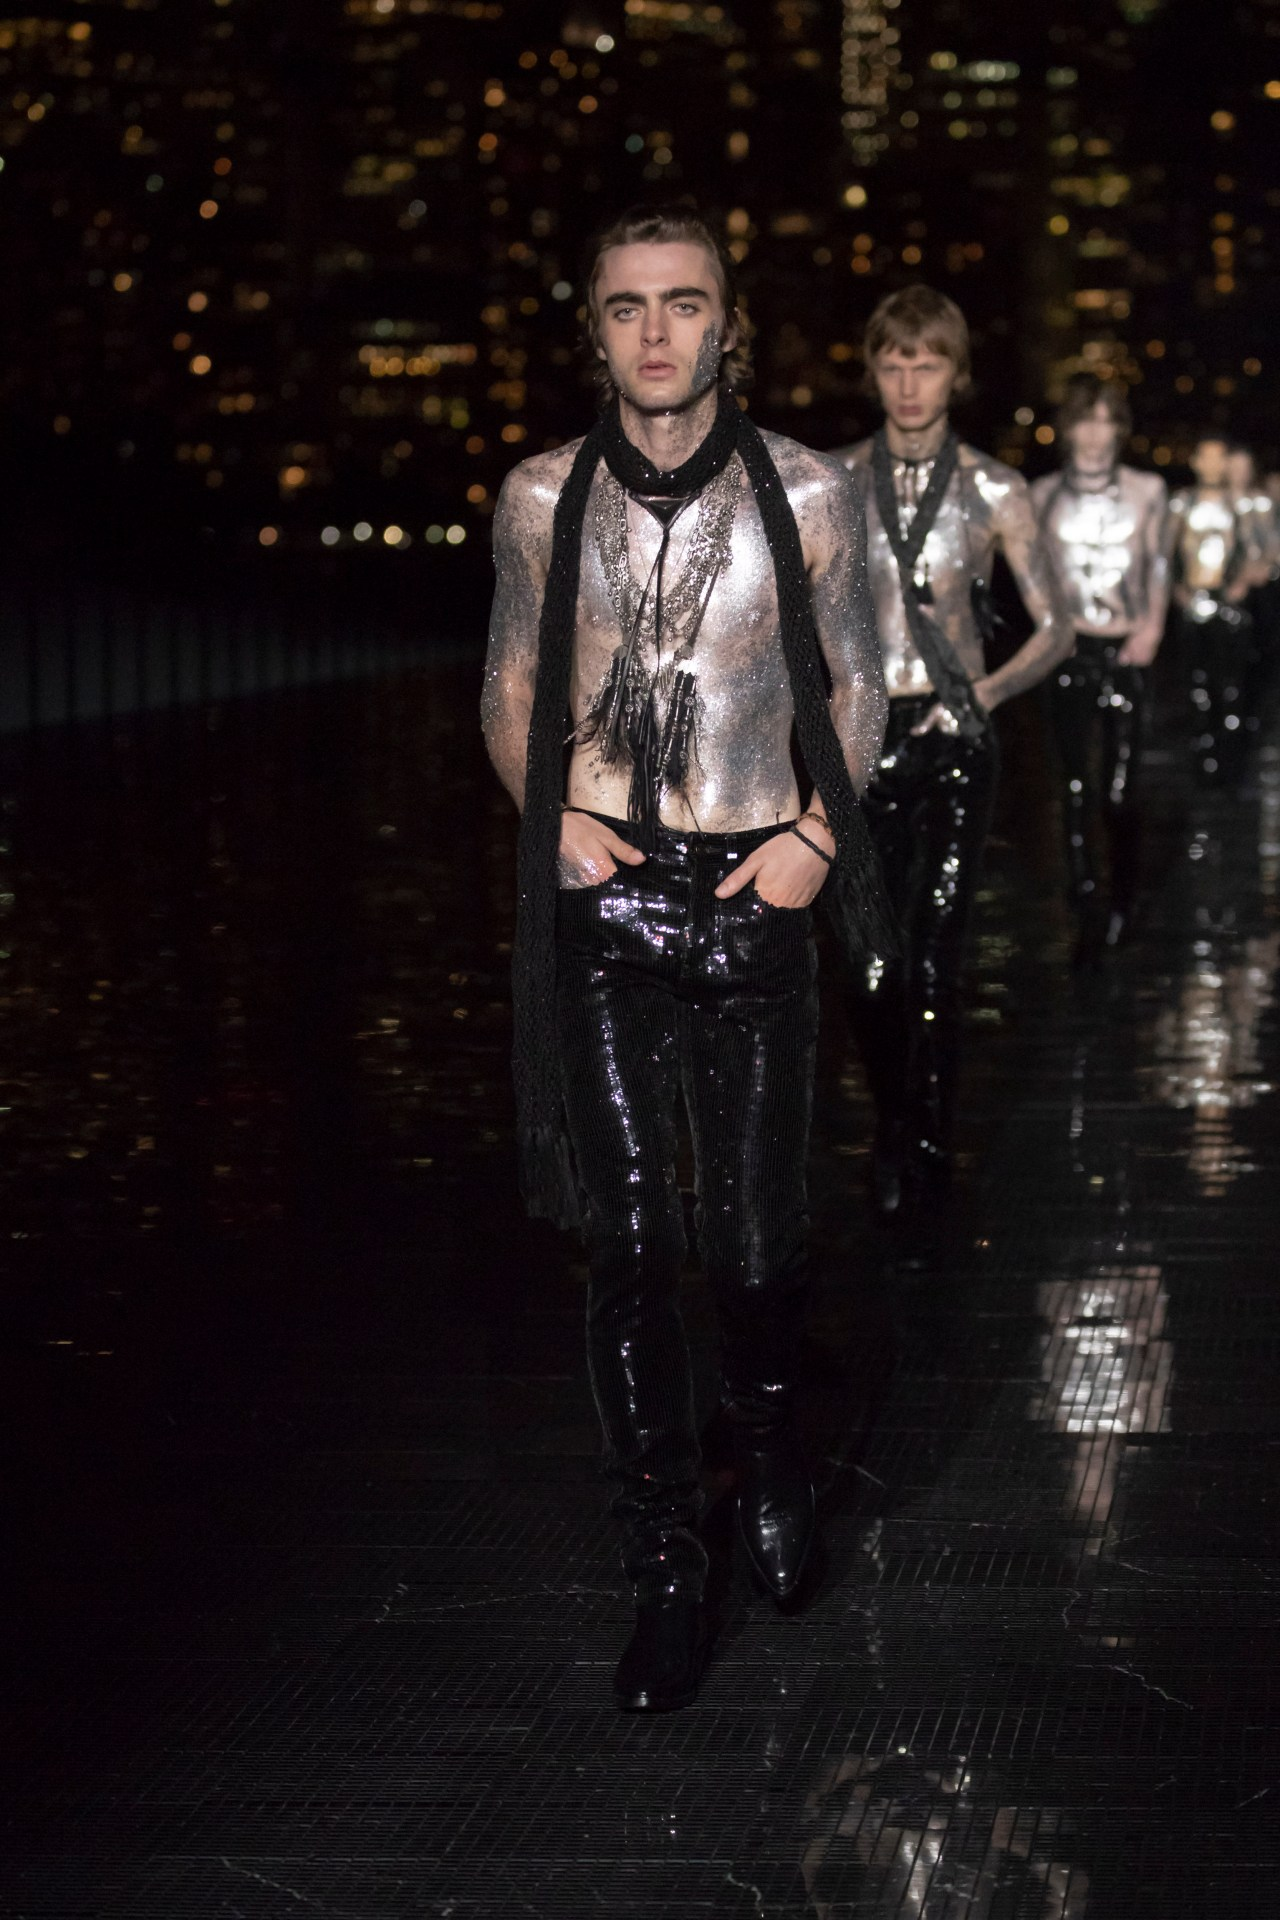 lennon gallagher saint laurent show ss19 nyc finale glitter model